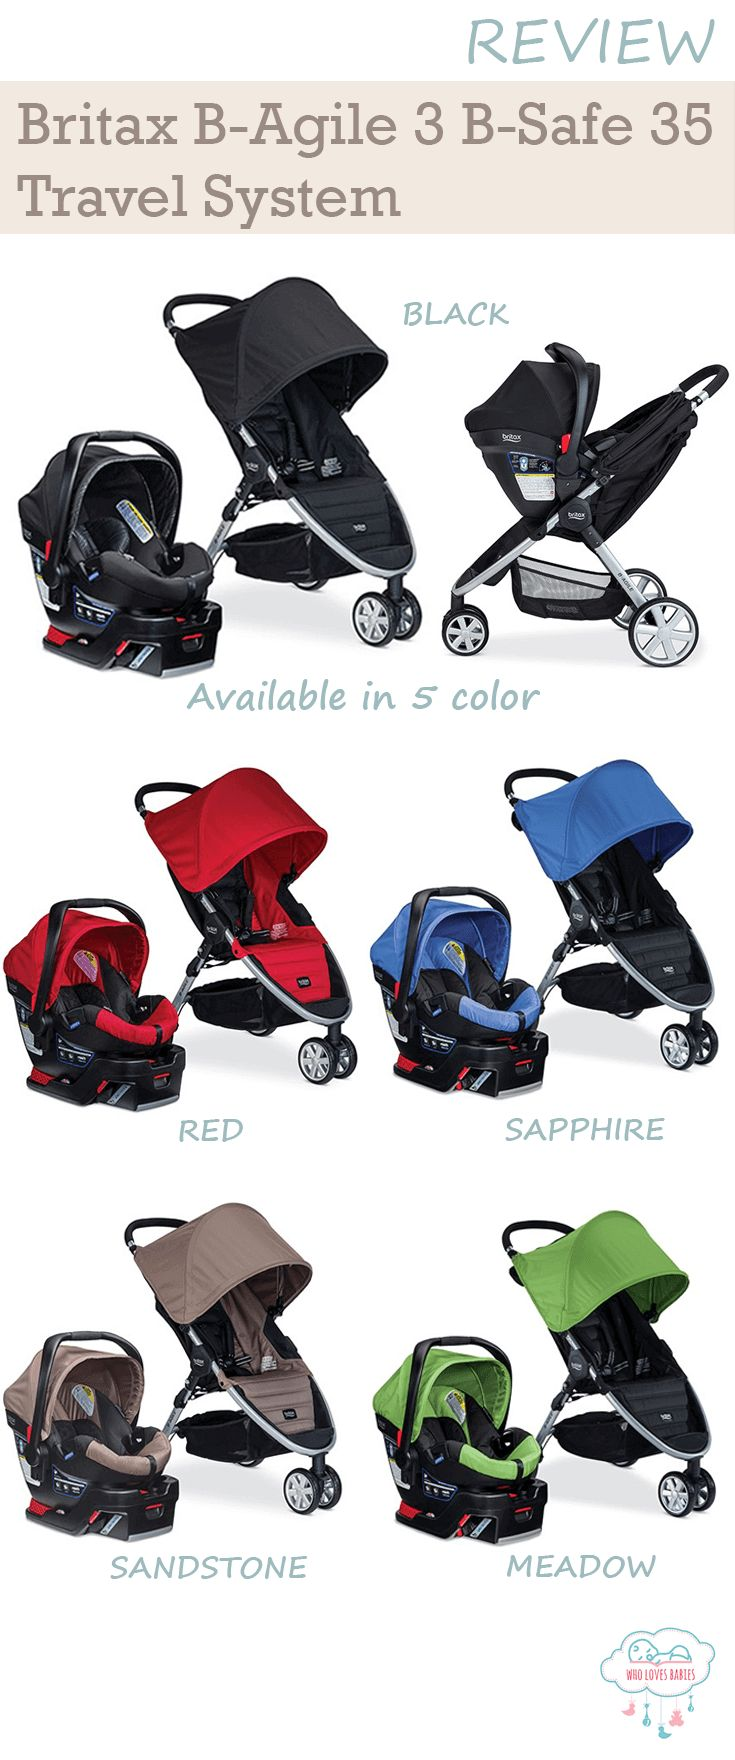 Britax Travel System Color Options